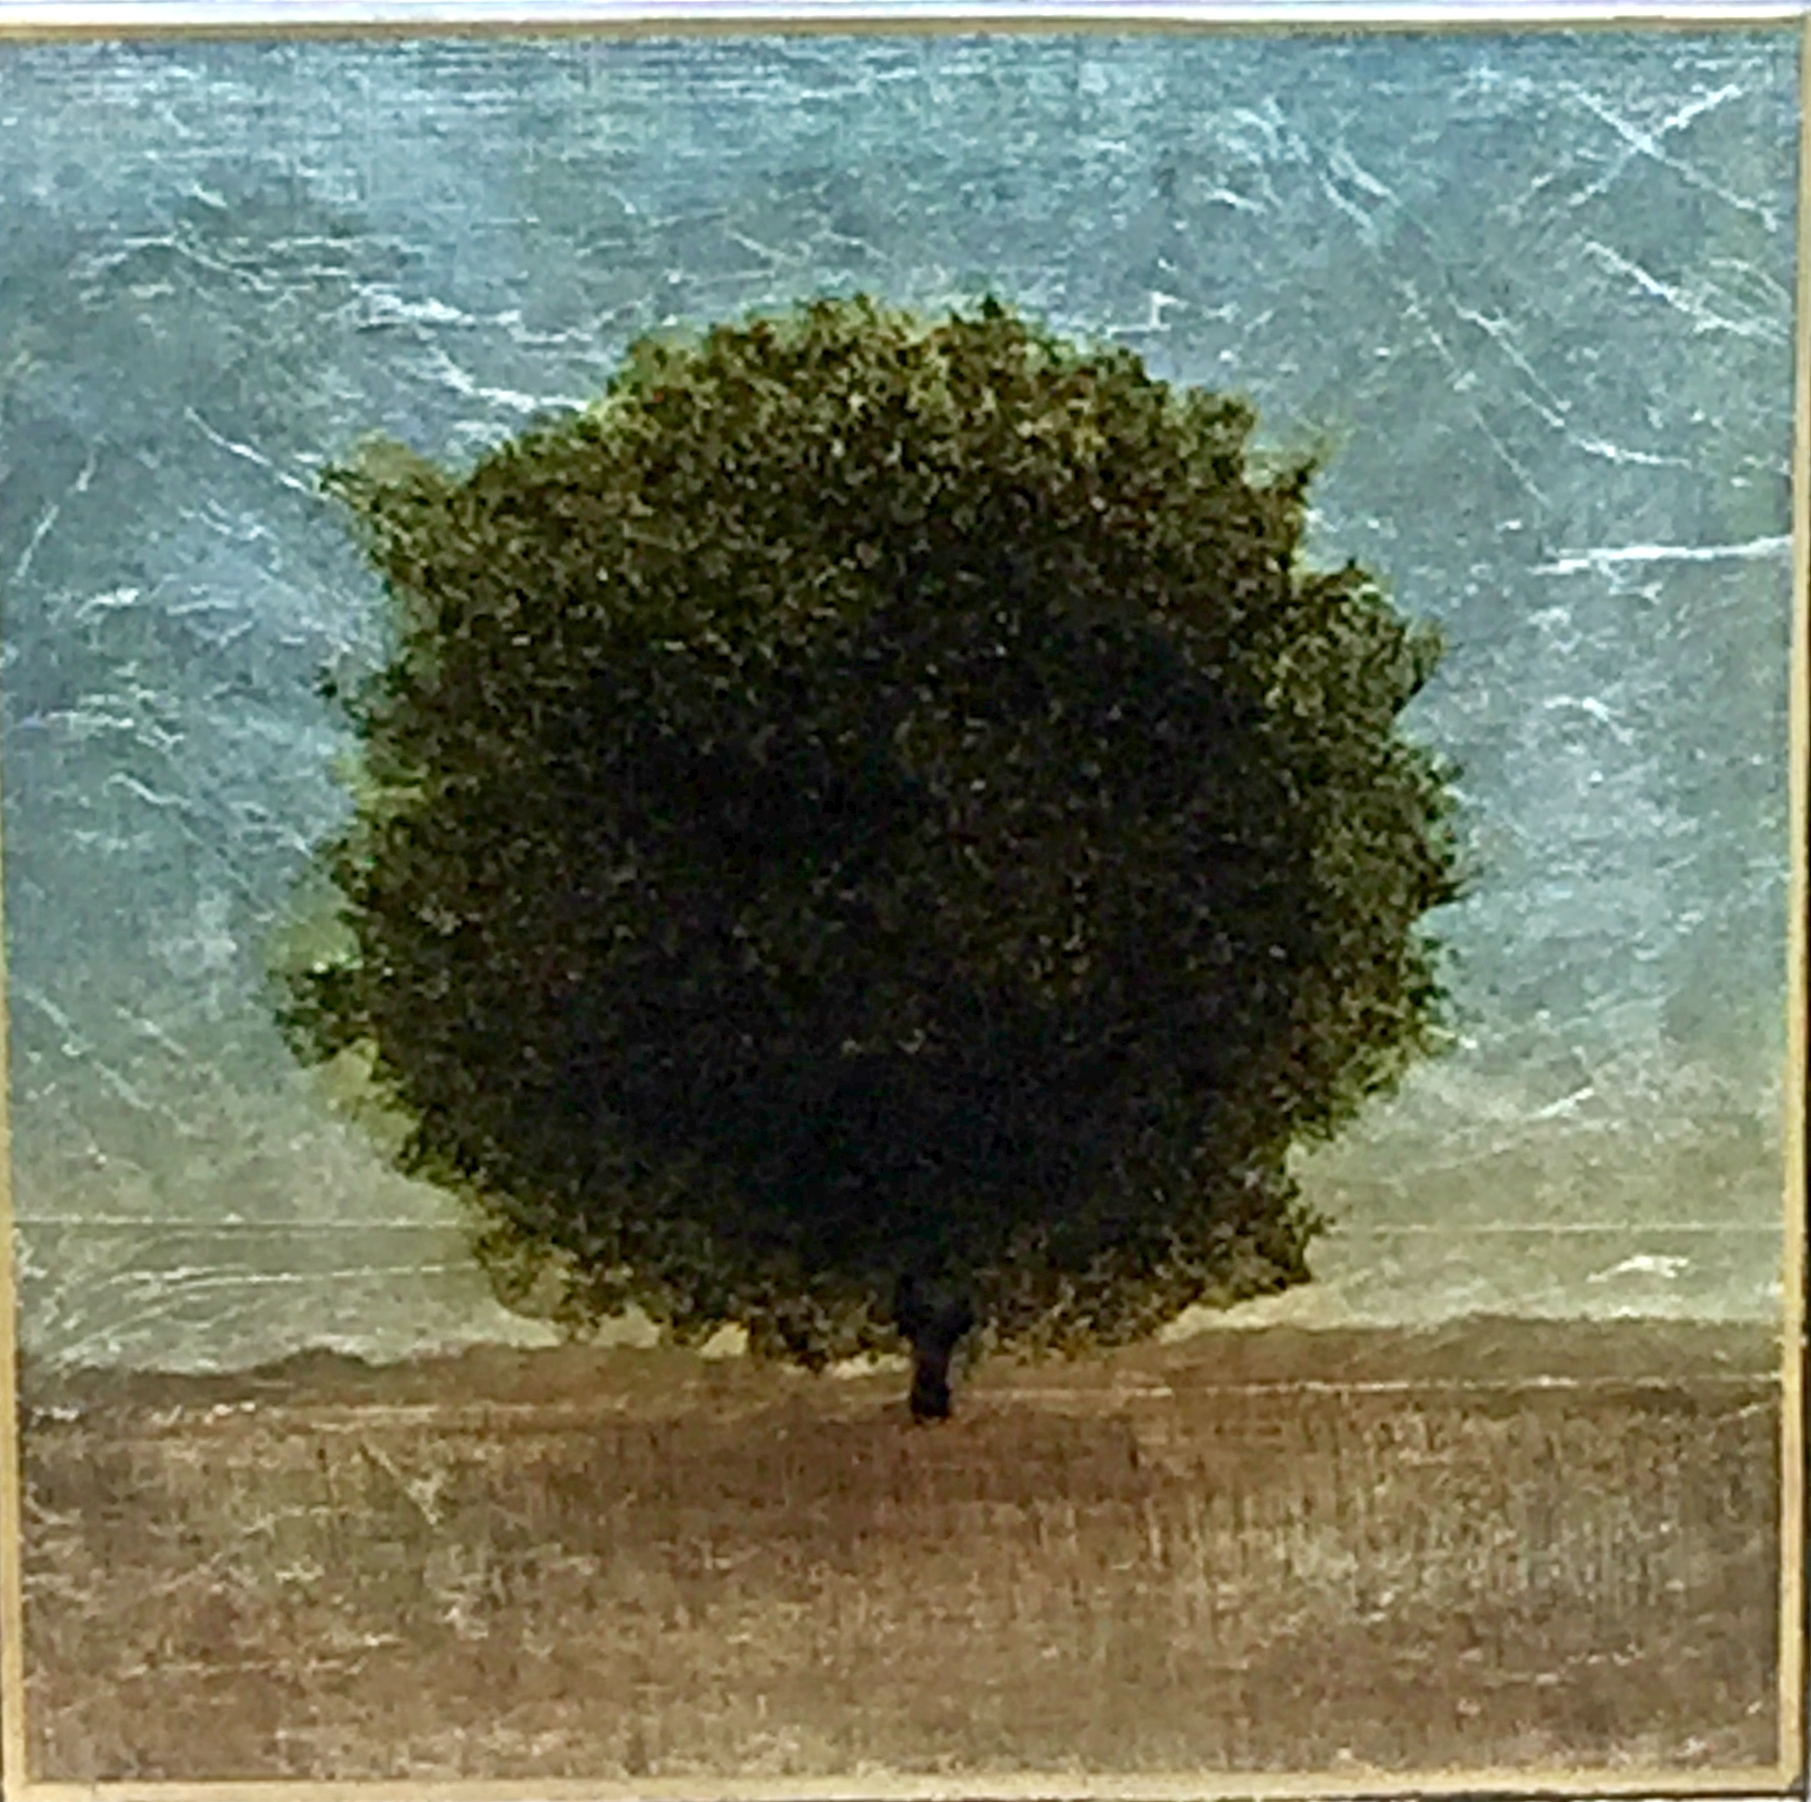 #179, mixed media tree painting by David Graff | Effusion Art Gallery + Cast Glass Studio, Invermere BC